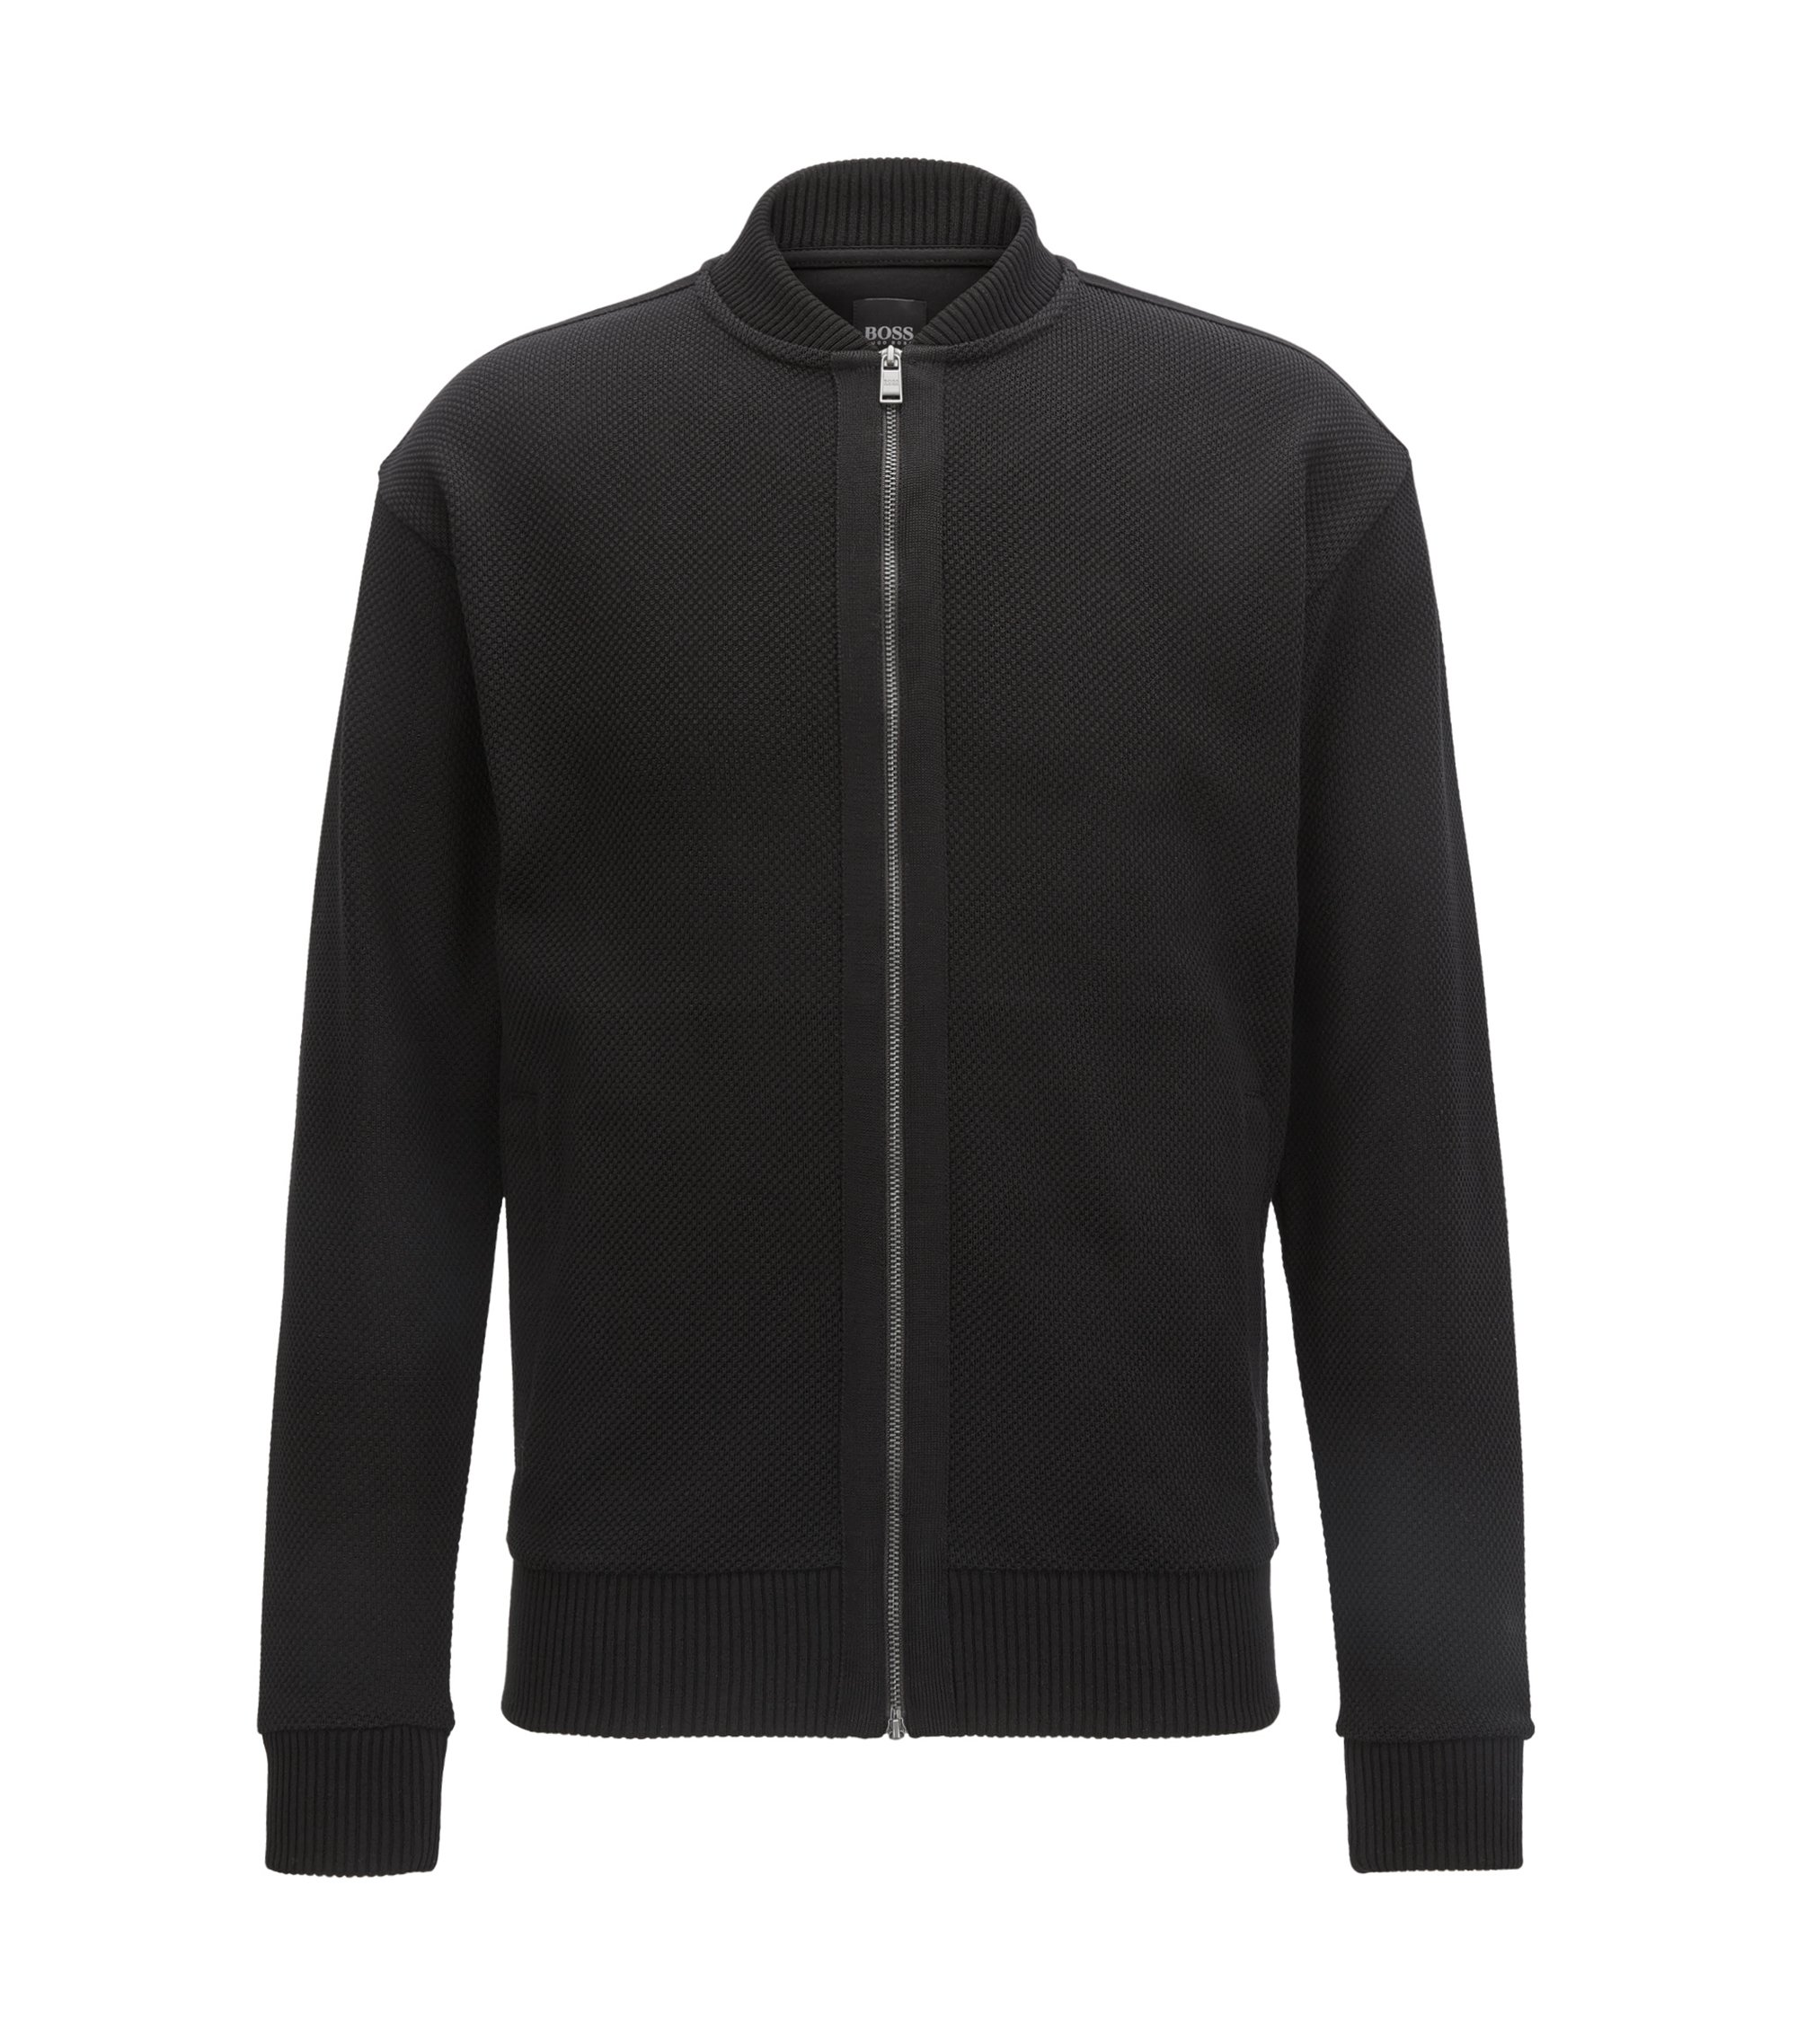 Cotton Full-Zip Jacket | Skiles, Black